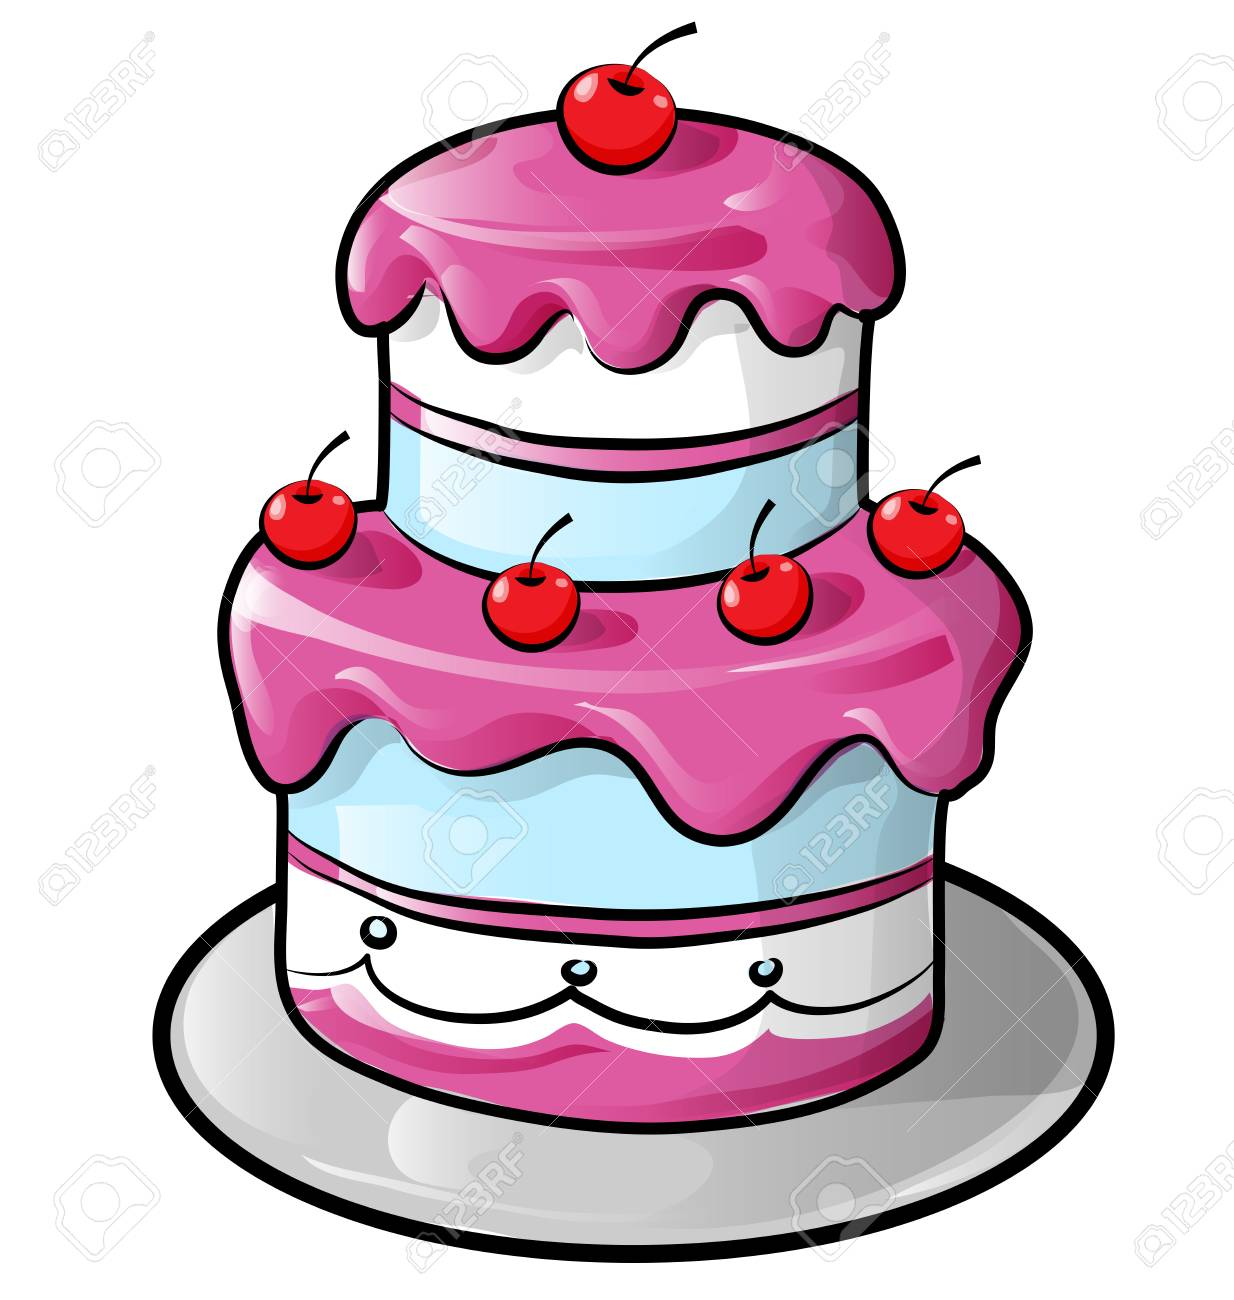 Colorful Birthday Cake With Outline Isolated On White Royalty Free